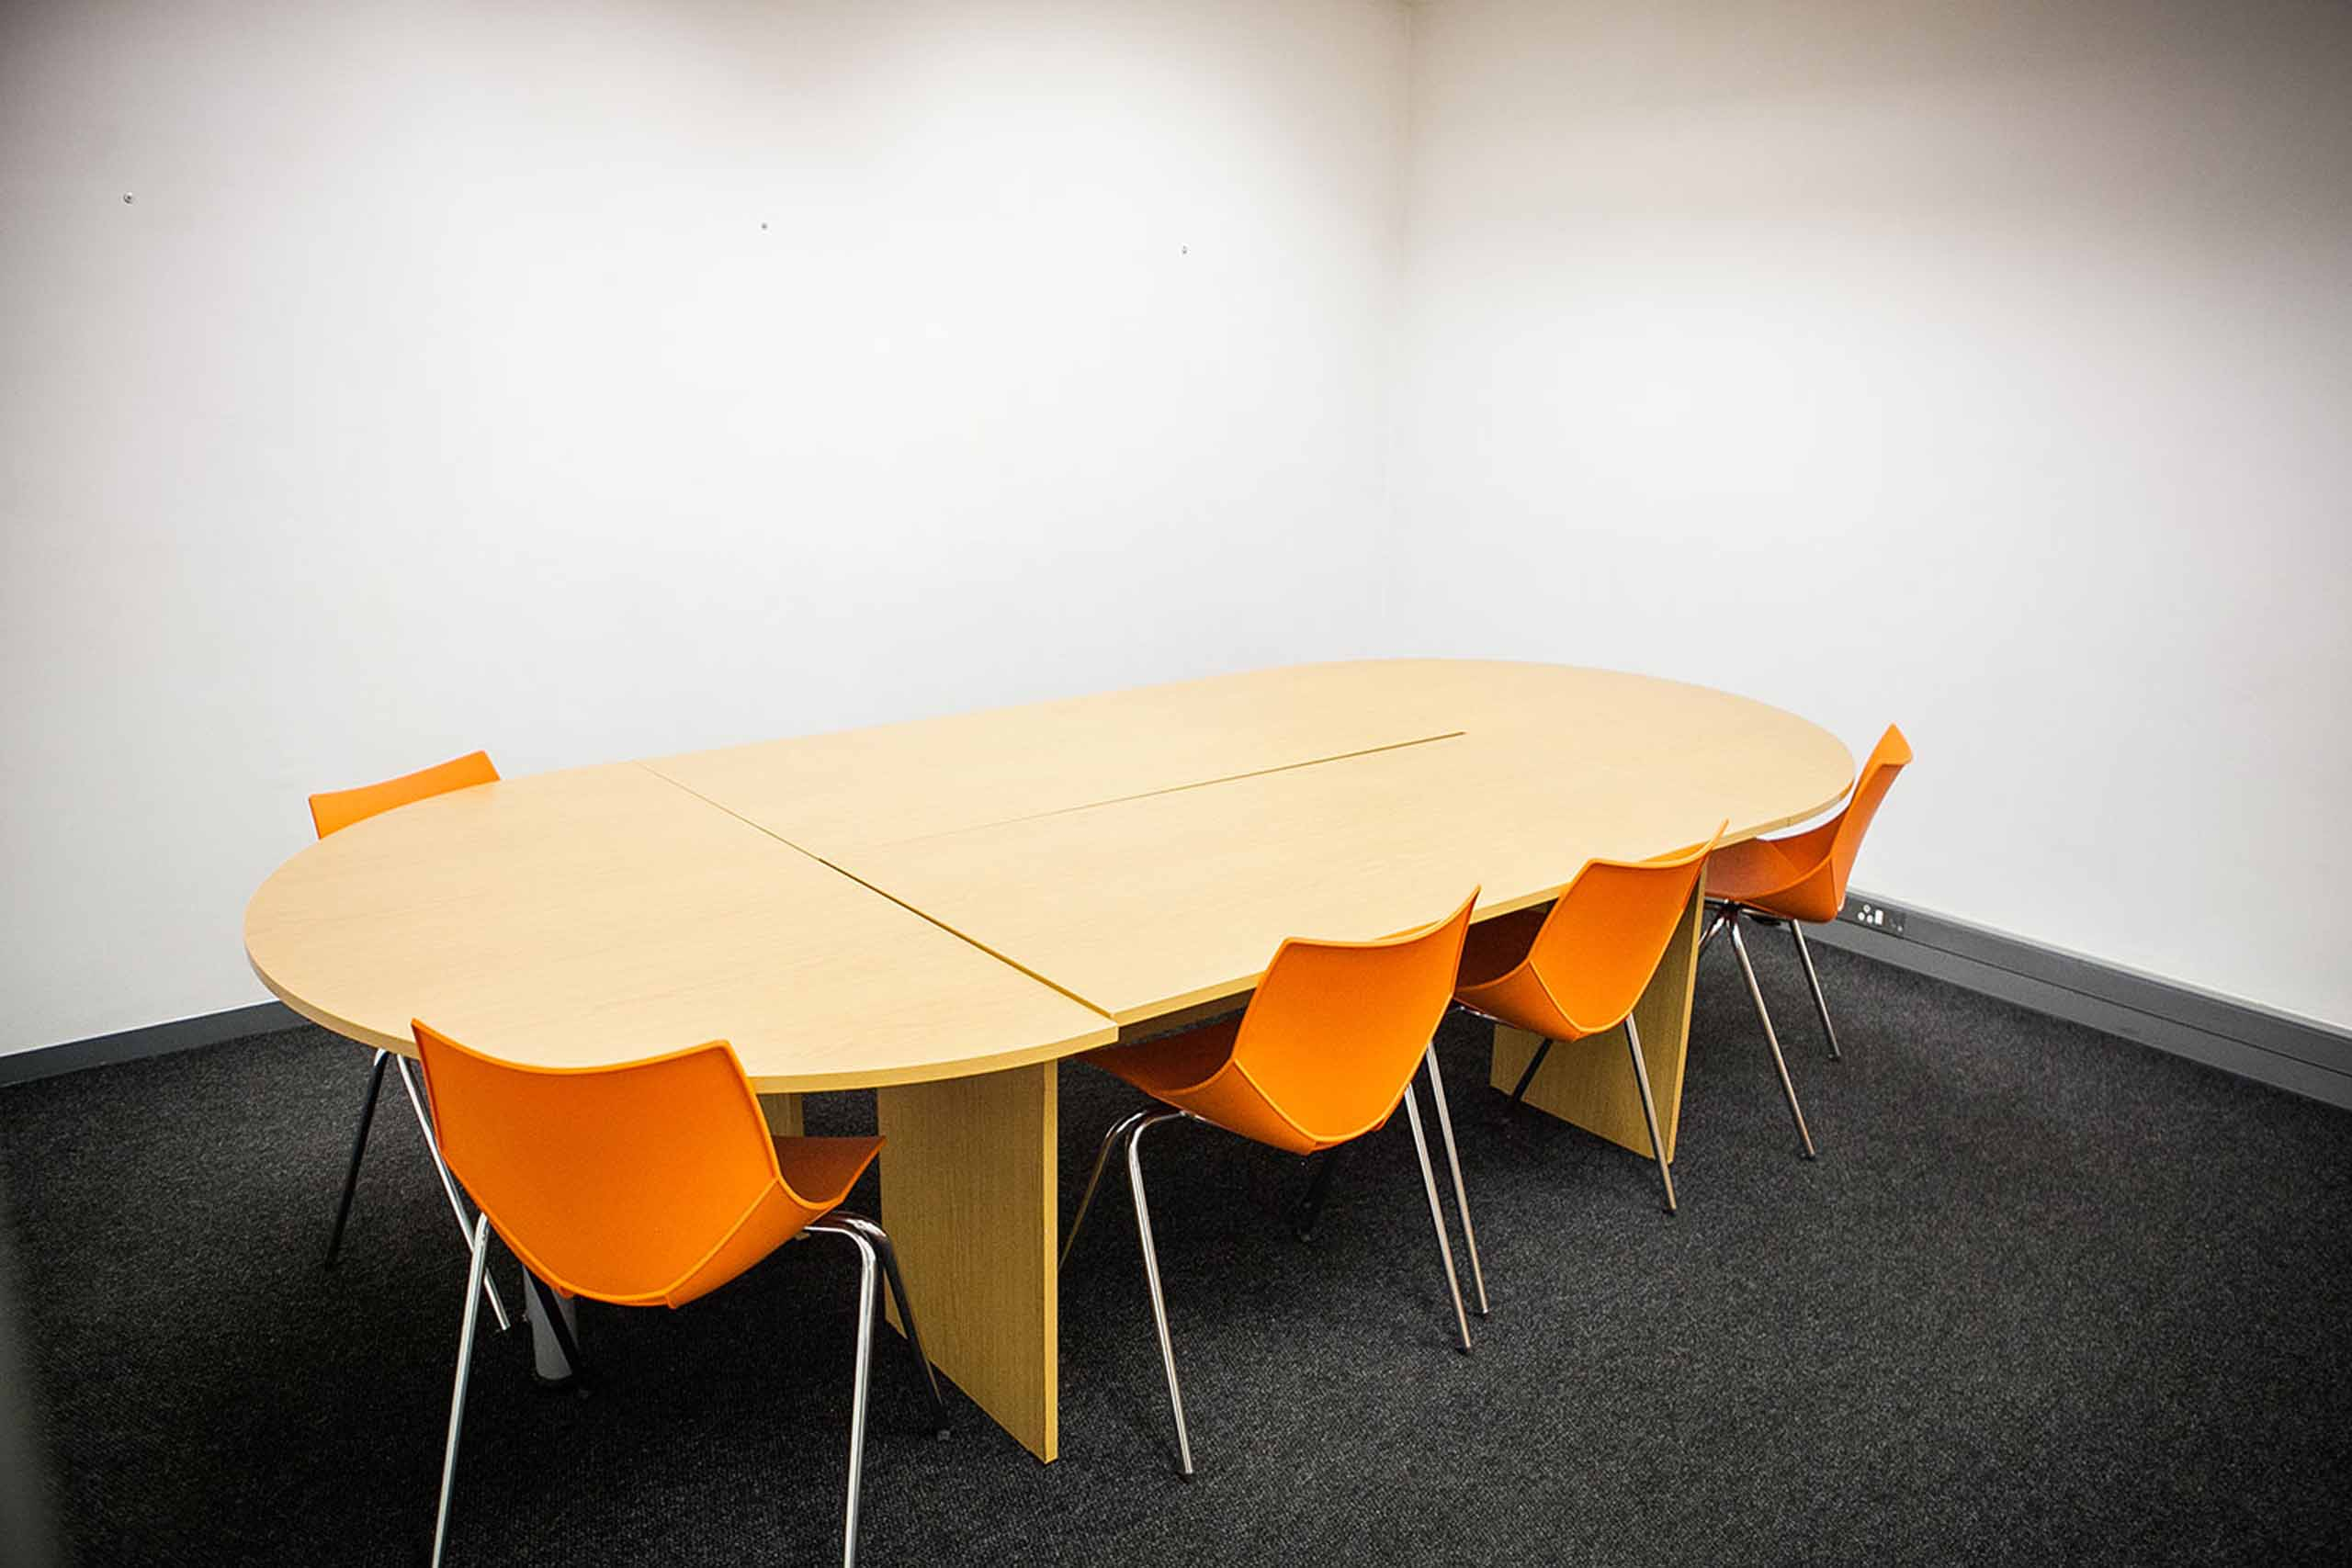 A meeting room with a modular wooden table and orange plastic chairs.